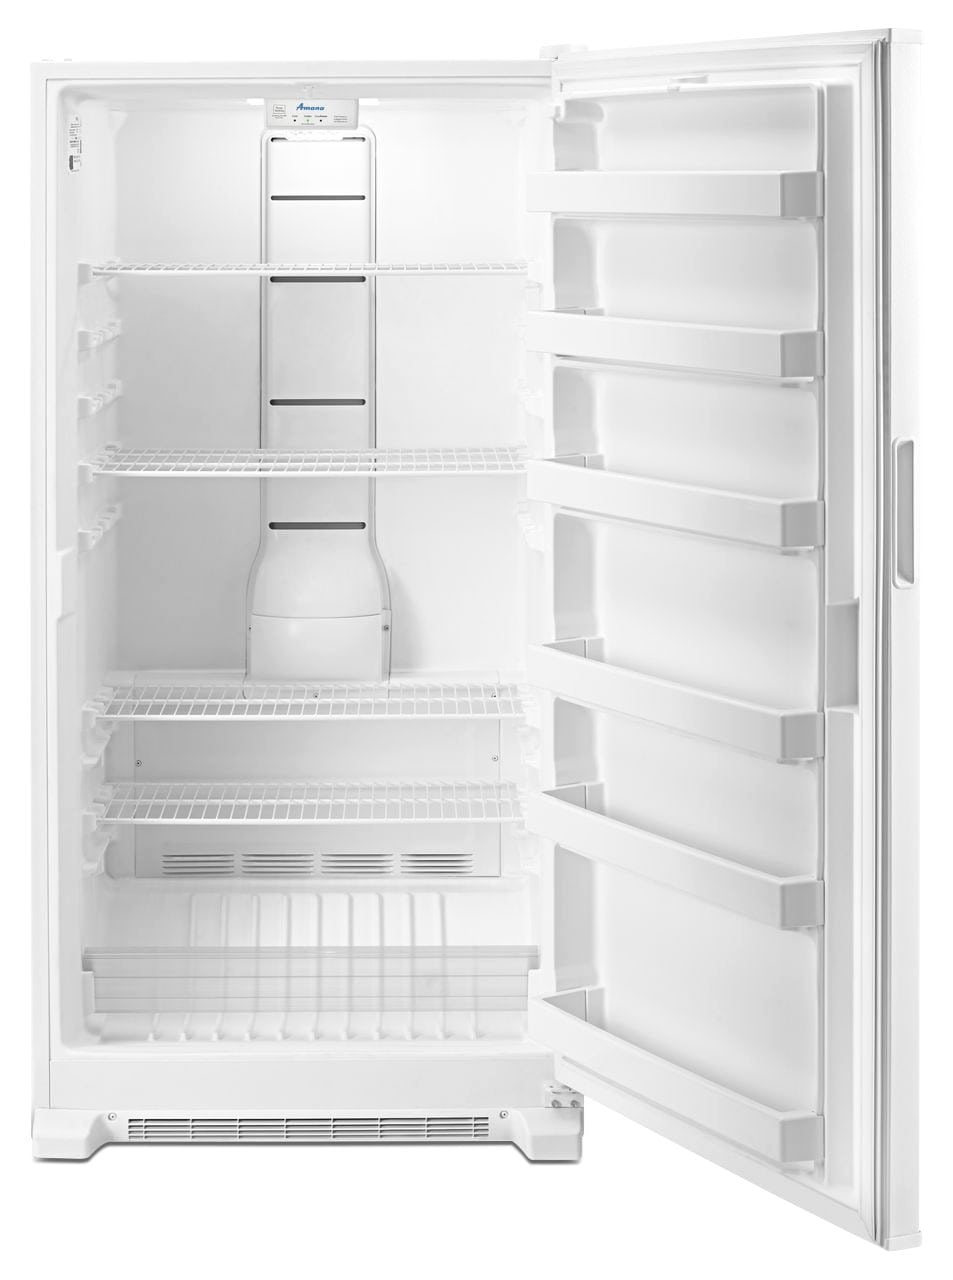 kitchen aid tv offer stainless steel counter amana white upright freezer (18.0 cu. ft.) - azf33x18dw ...